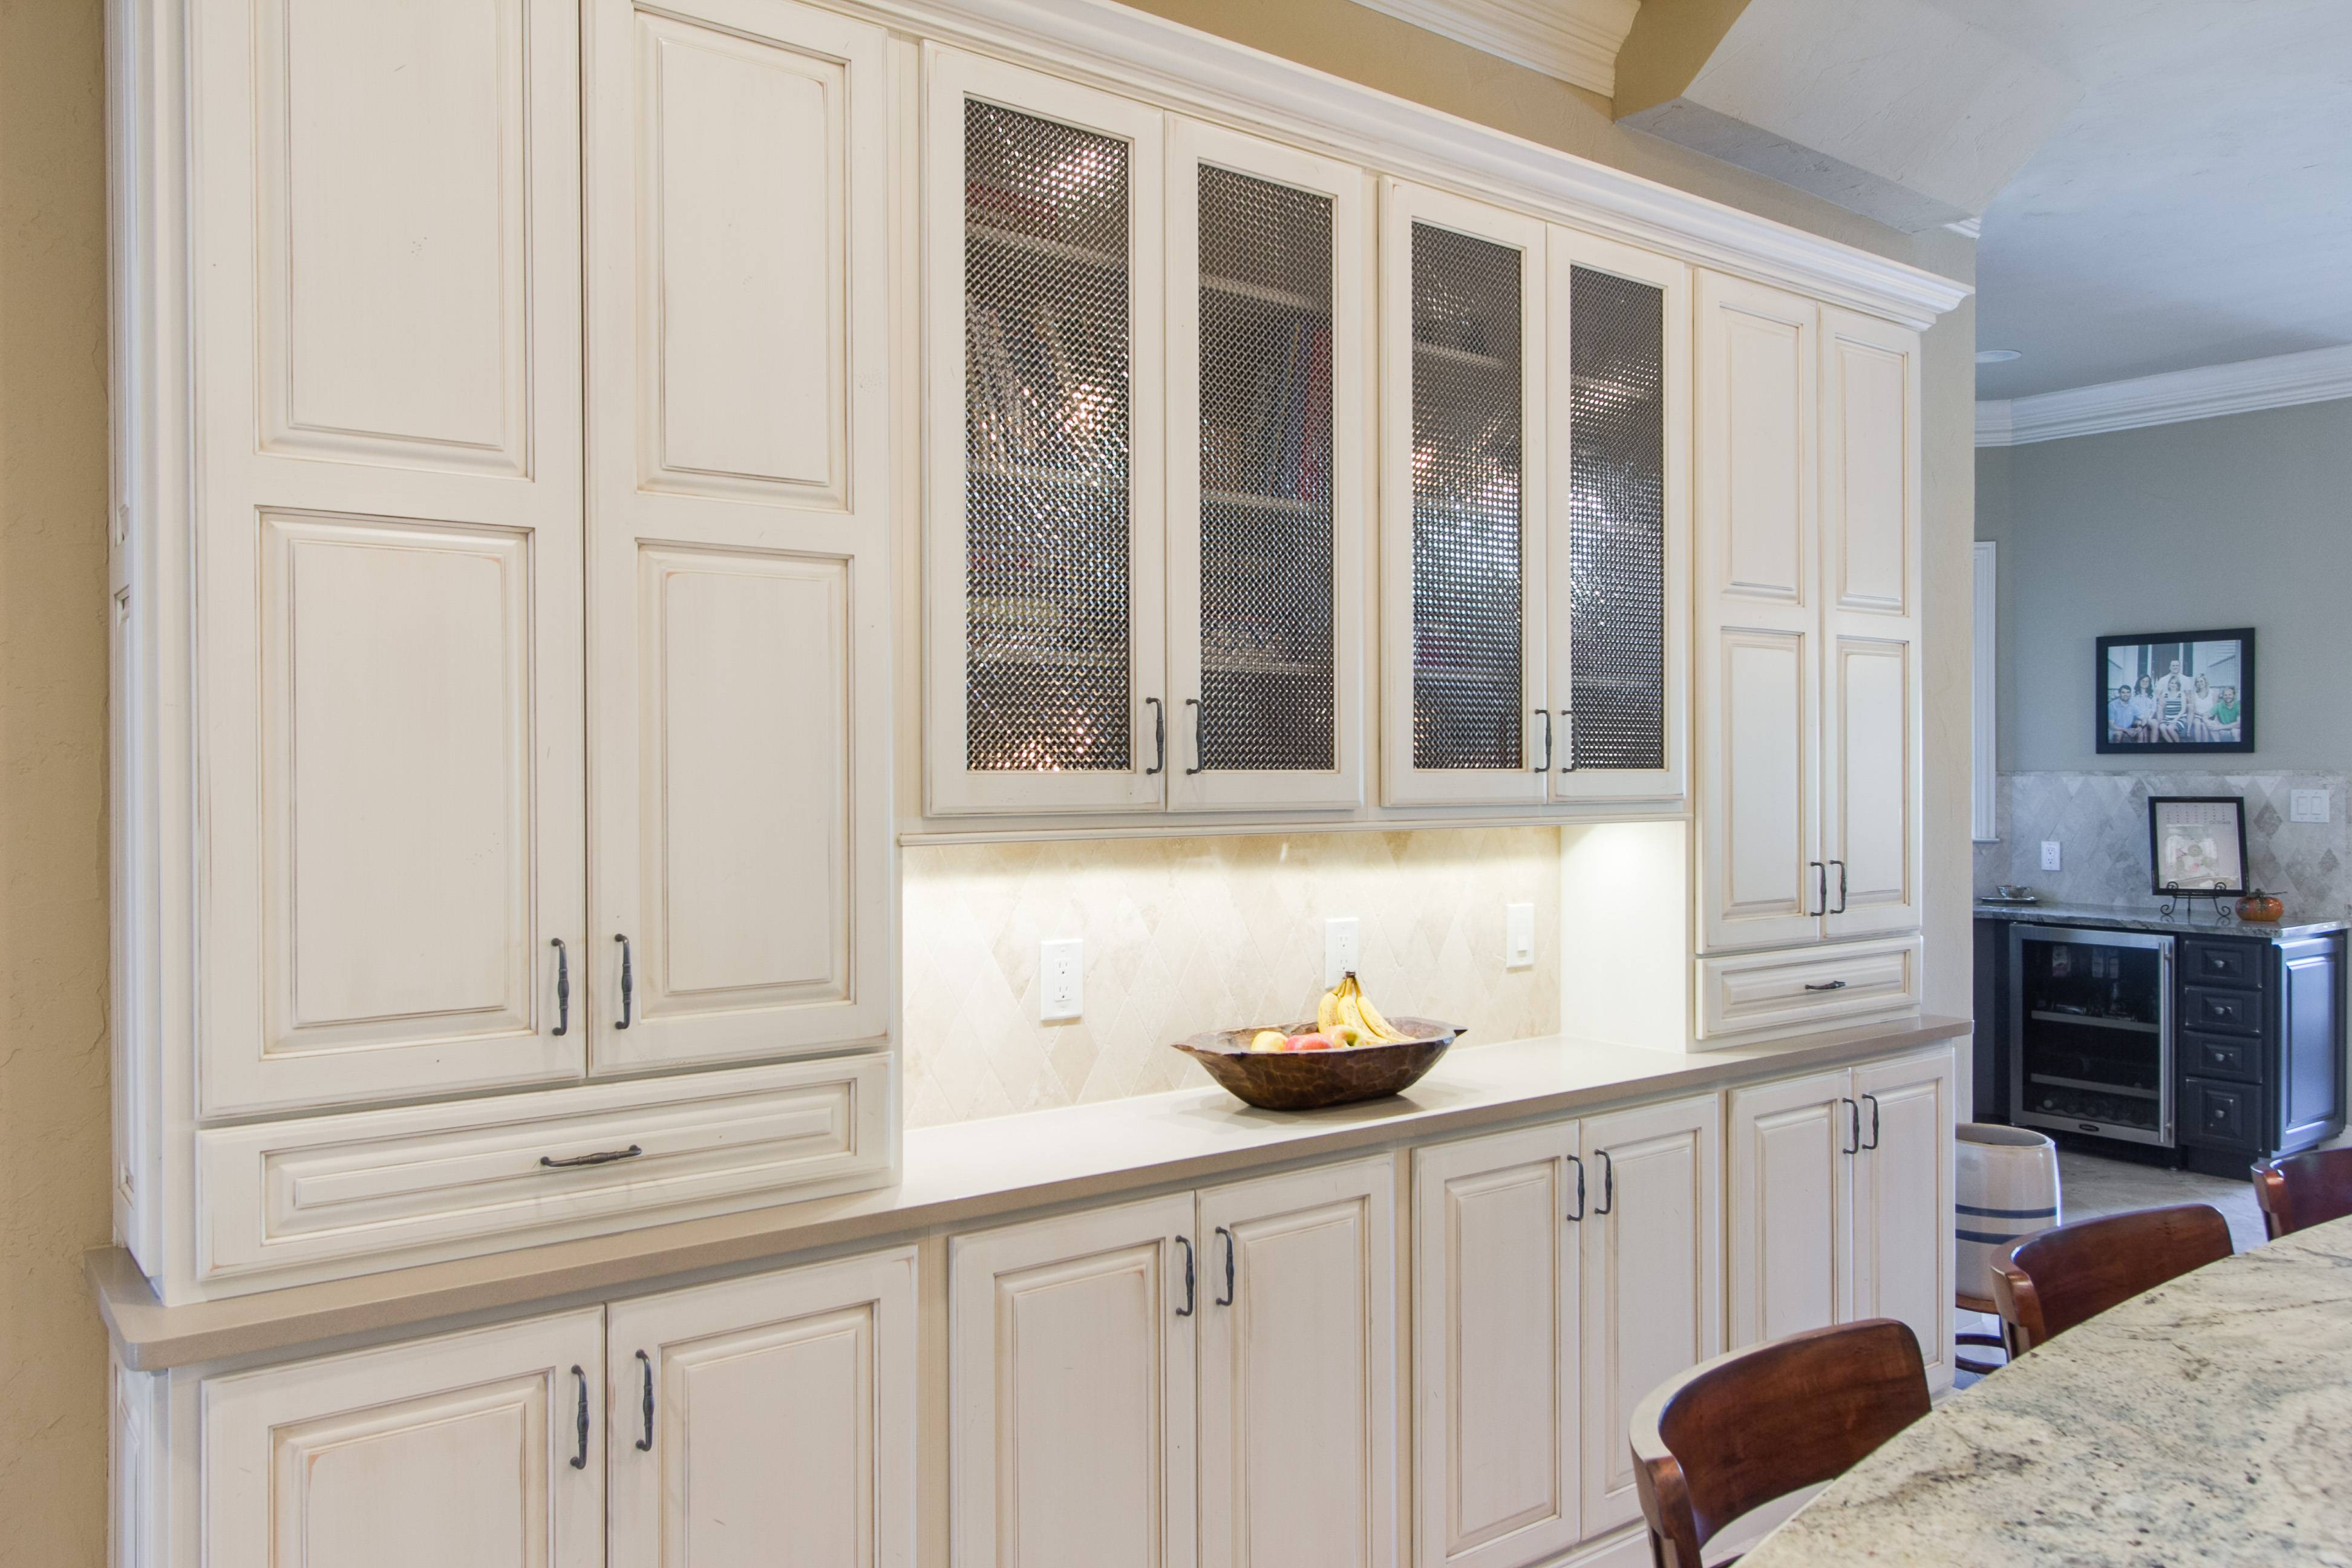 kitchen wall cabinets with drawers,Kitchen Wall Cabinets,Kitchen ideas